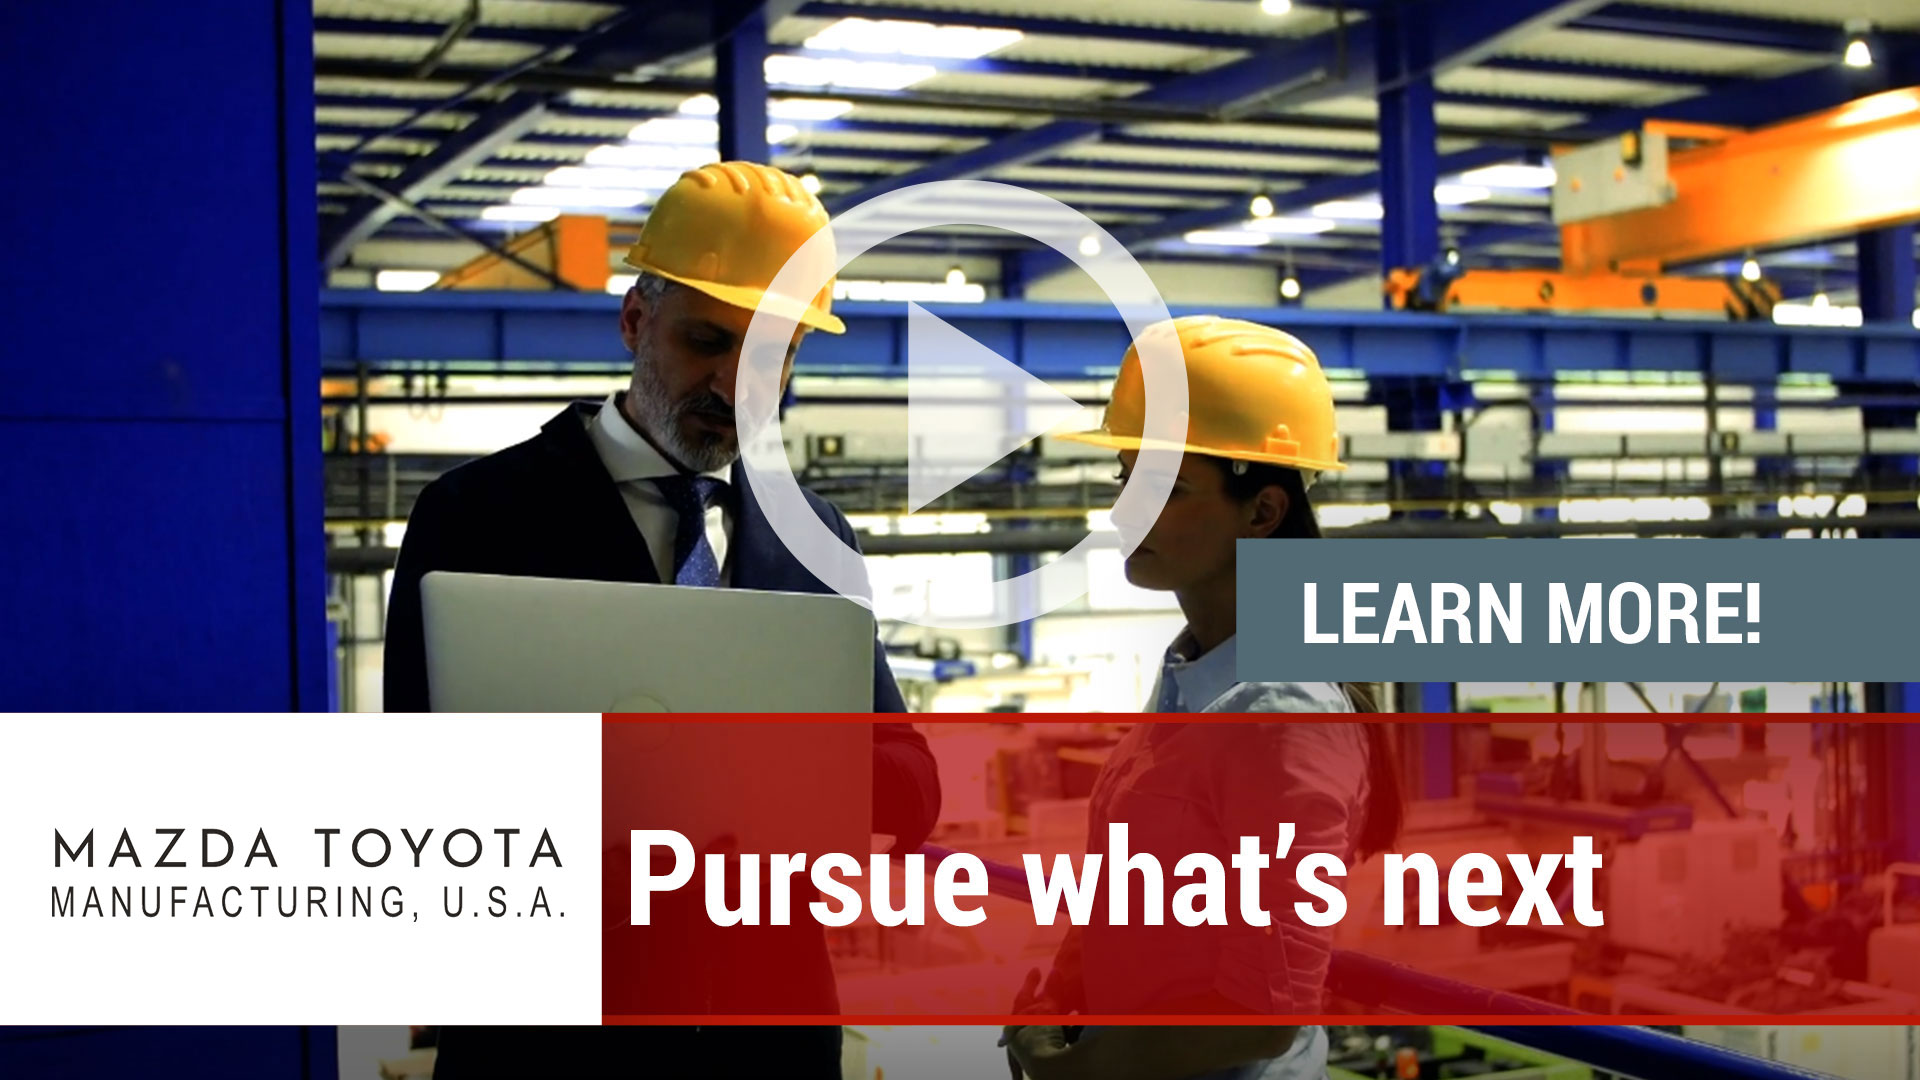 Watch our careers video for available job opening Mazda Toyota Manufacturing, calling Hunstville ou in Huntsville, AL, USA